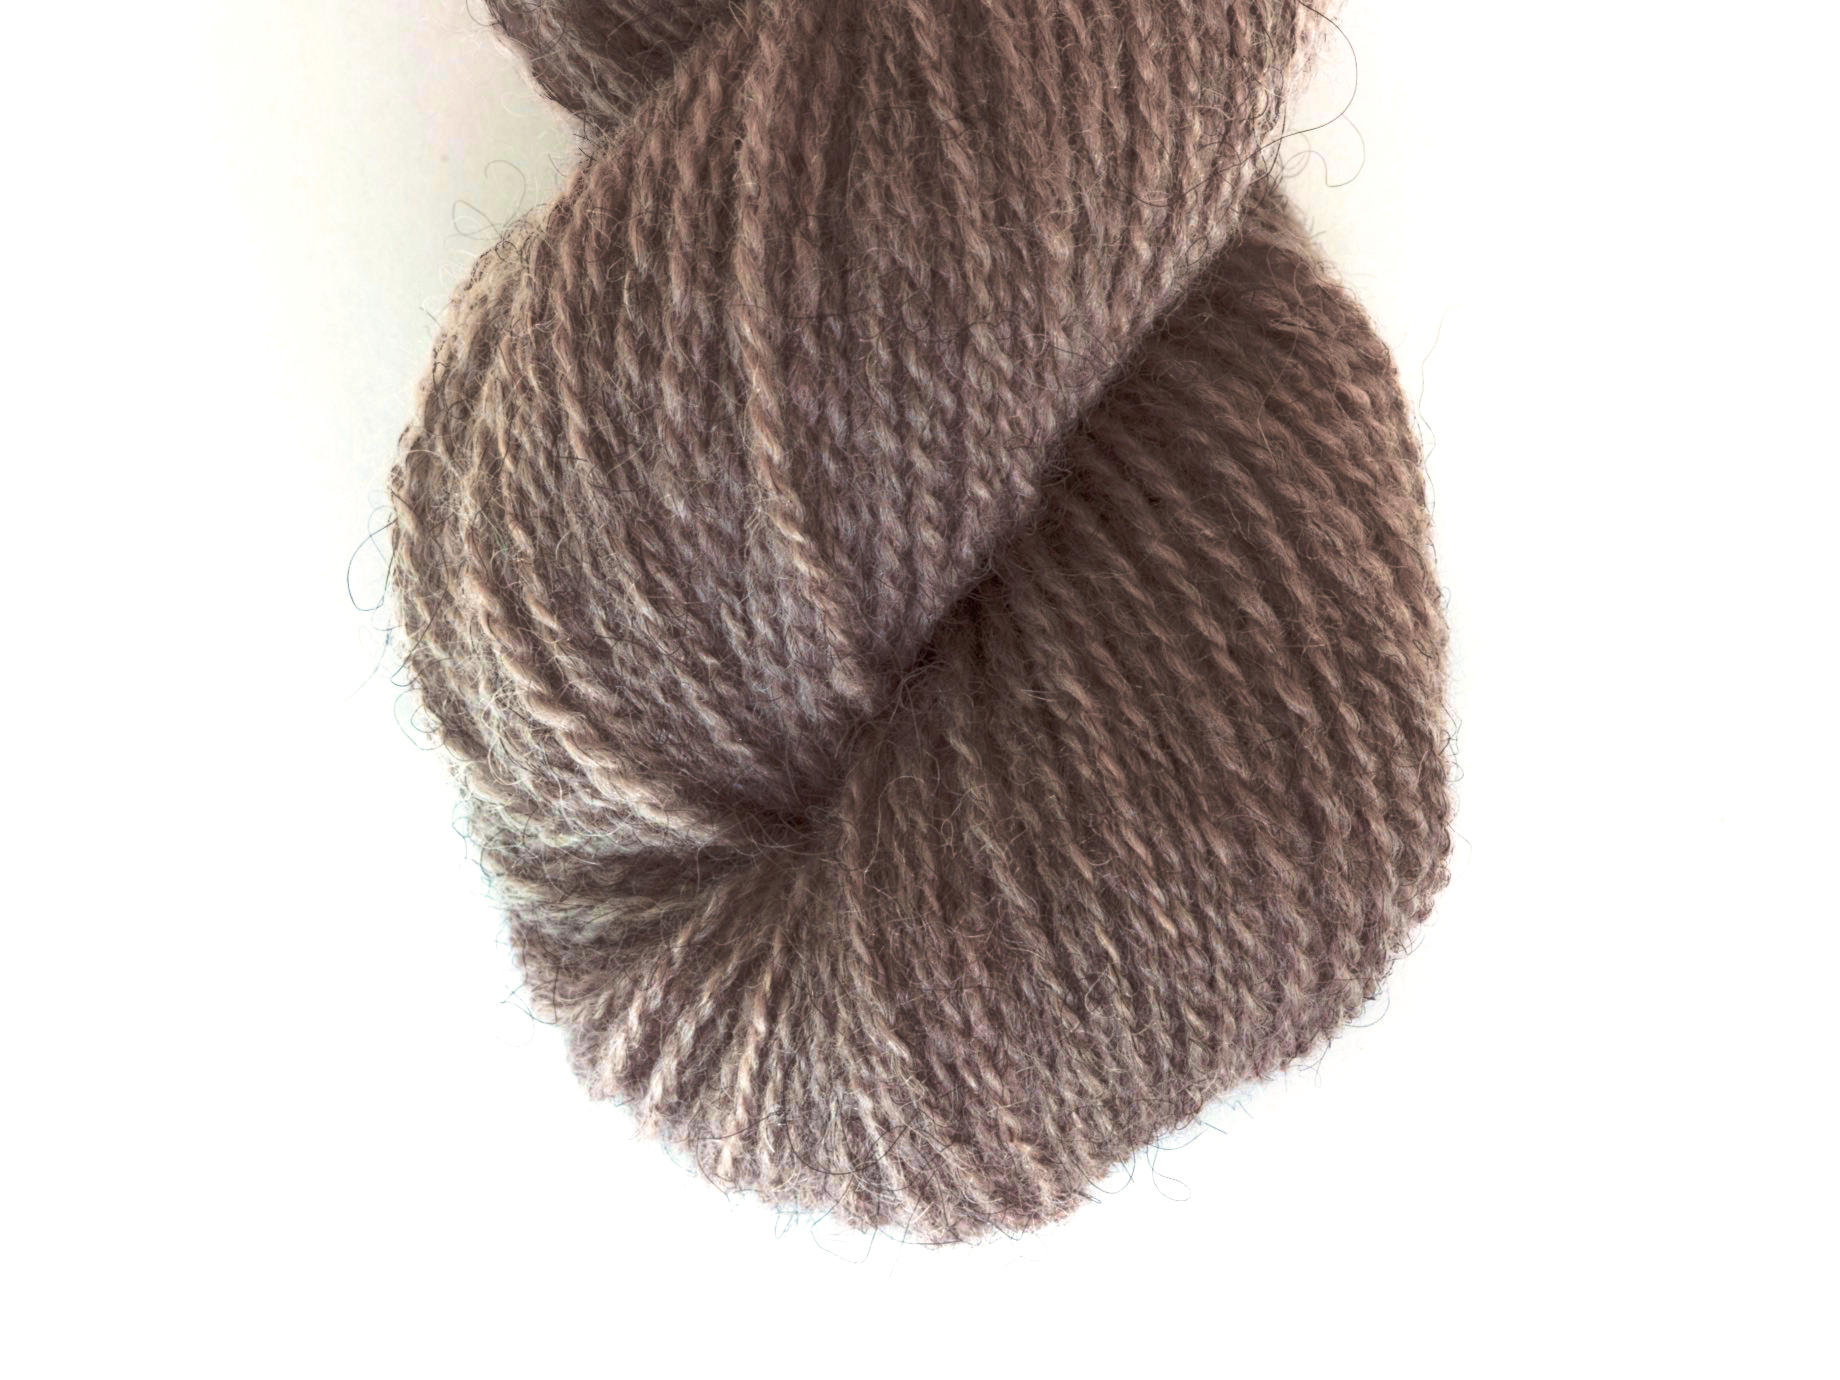 Bohus Stickning garn yarn BS 115 lambswool